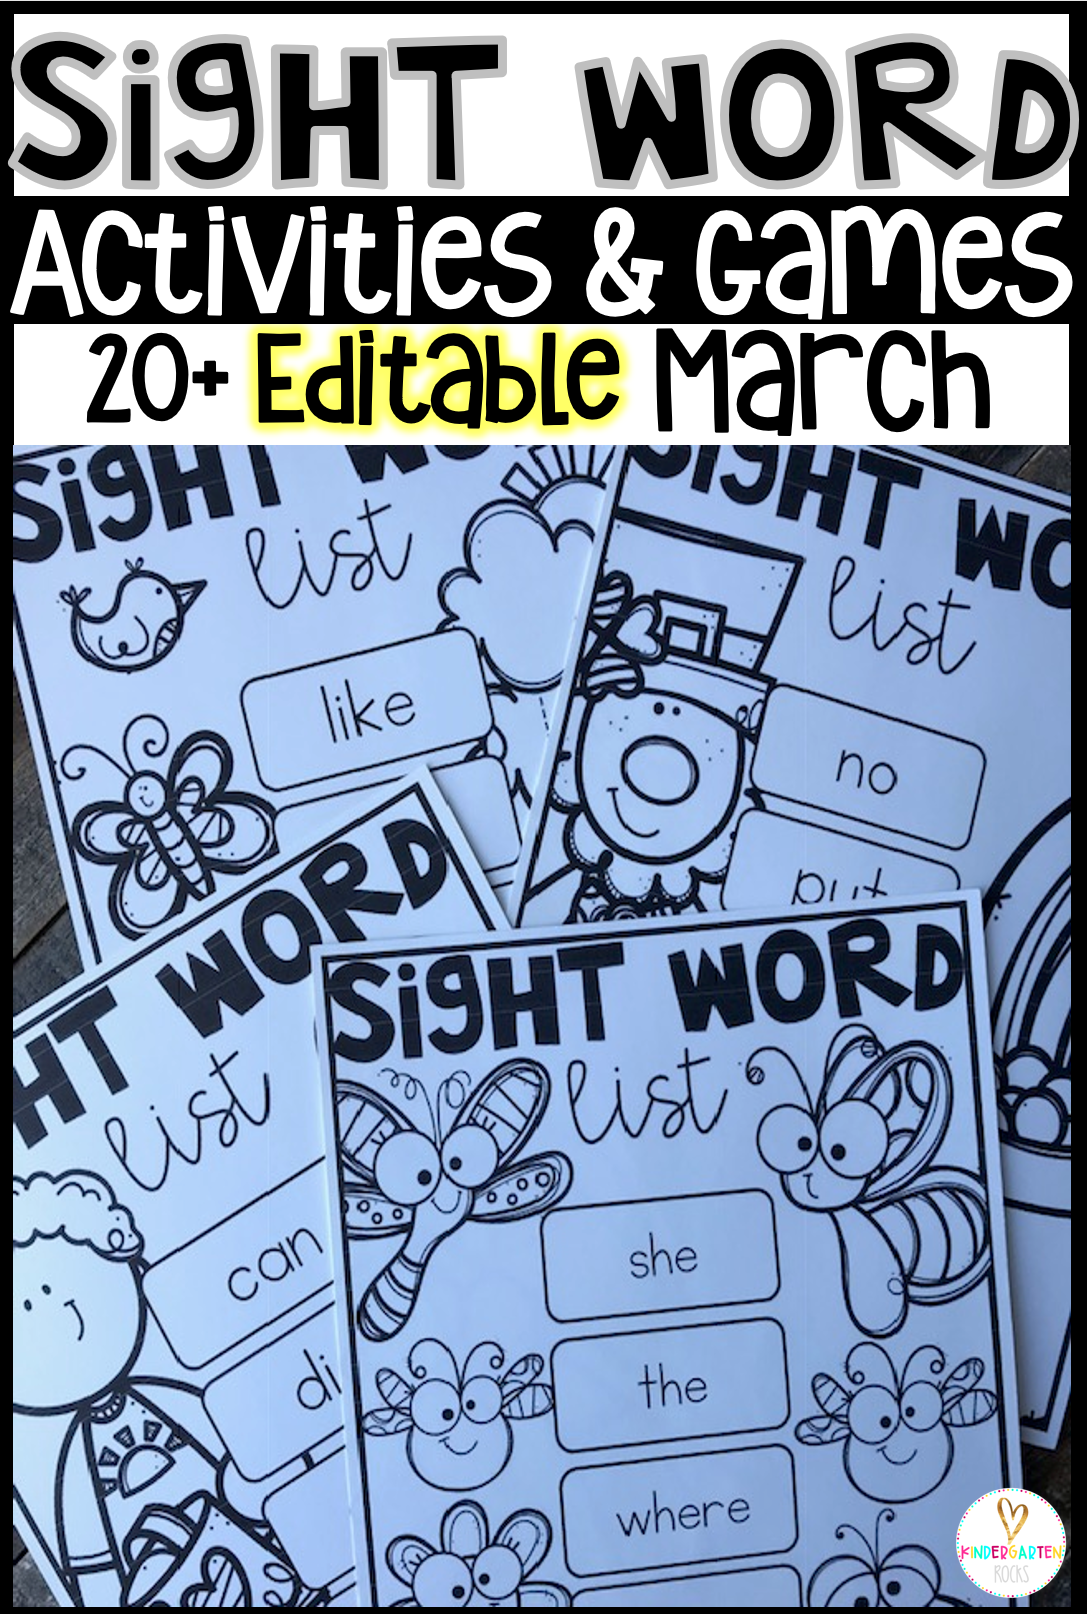 Are you looking for spring themed sight word activities that you can change to meet the needs of your kindergarten and/or first grade children?   Then, you will love Editable Sight Words Printables, Activities and Games for March.